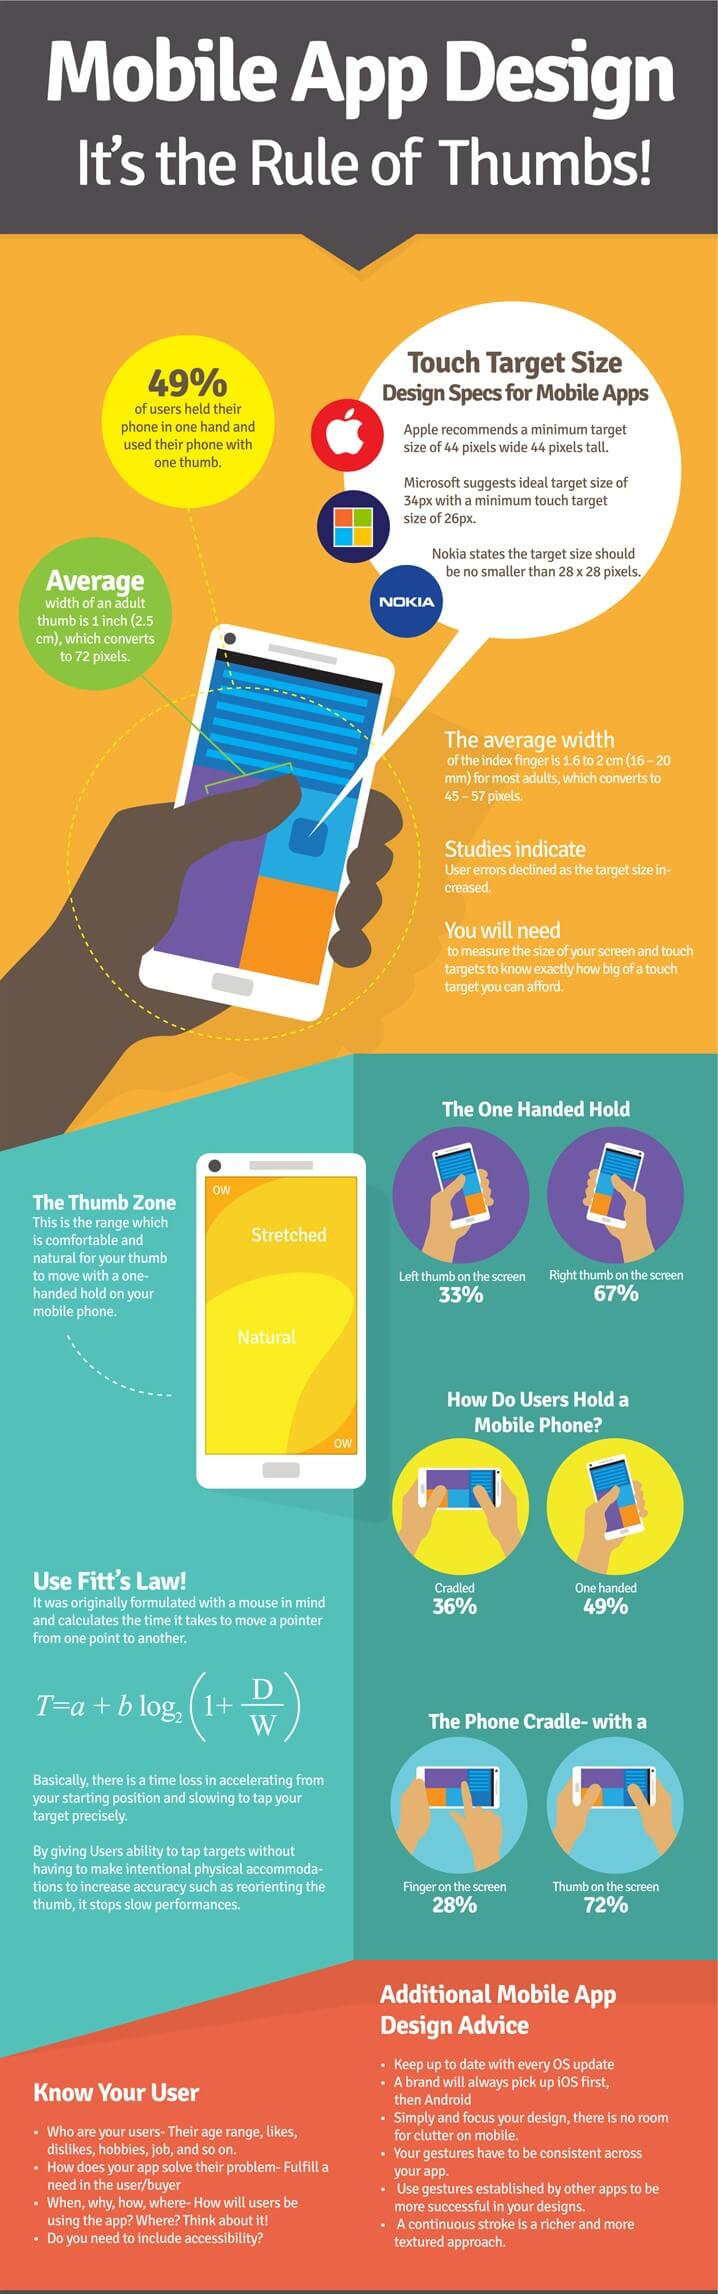 infographic-mobile-app-design-its-the-rule-of-thumbs(1)